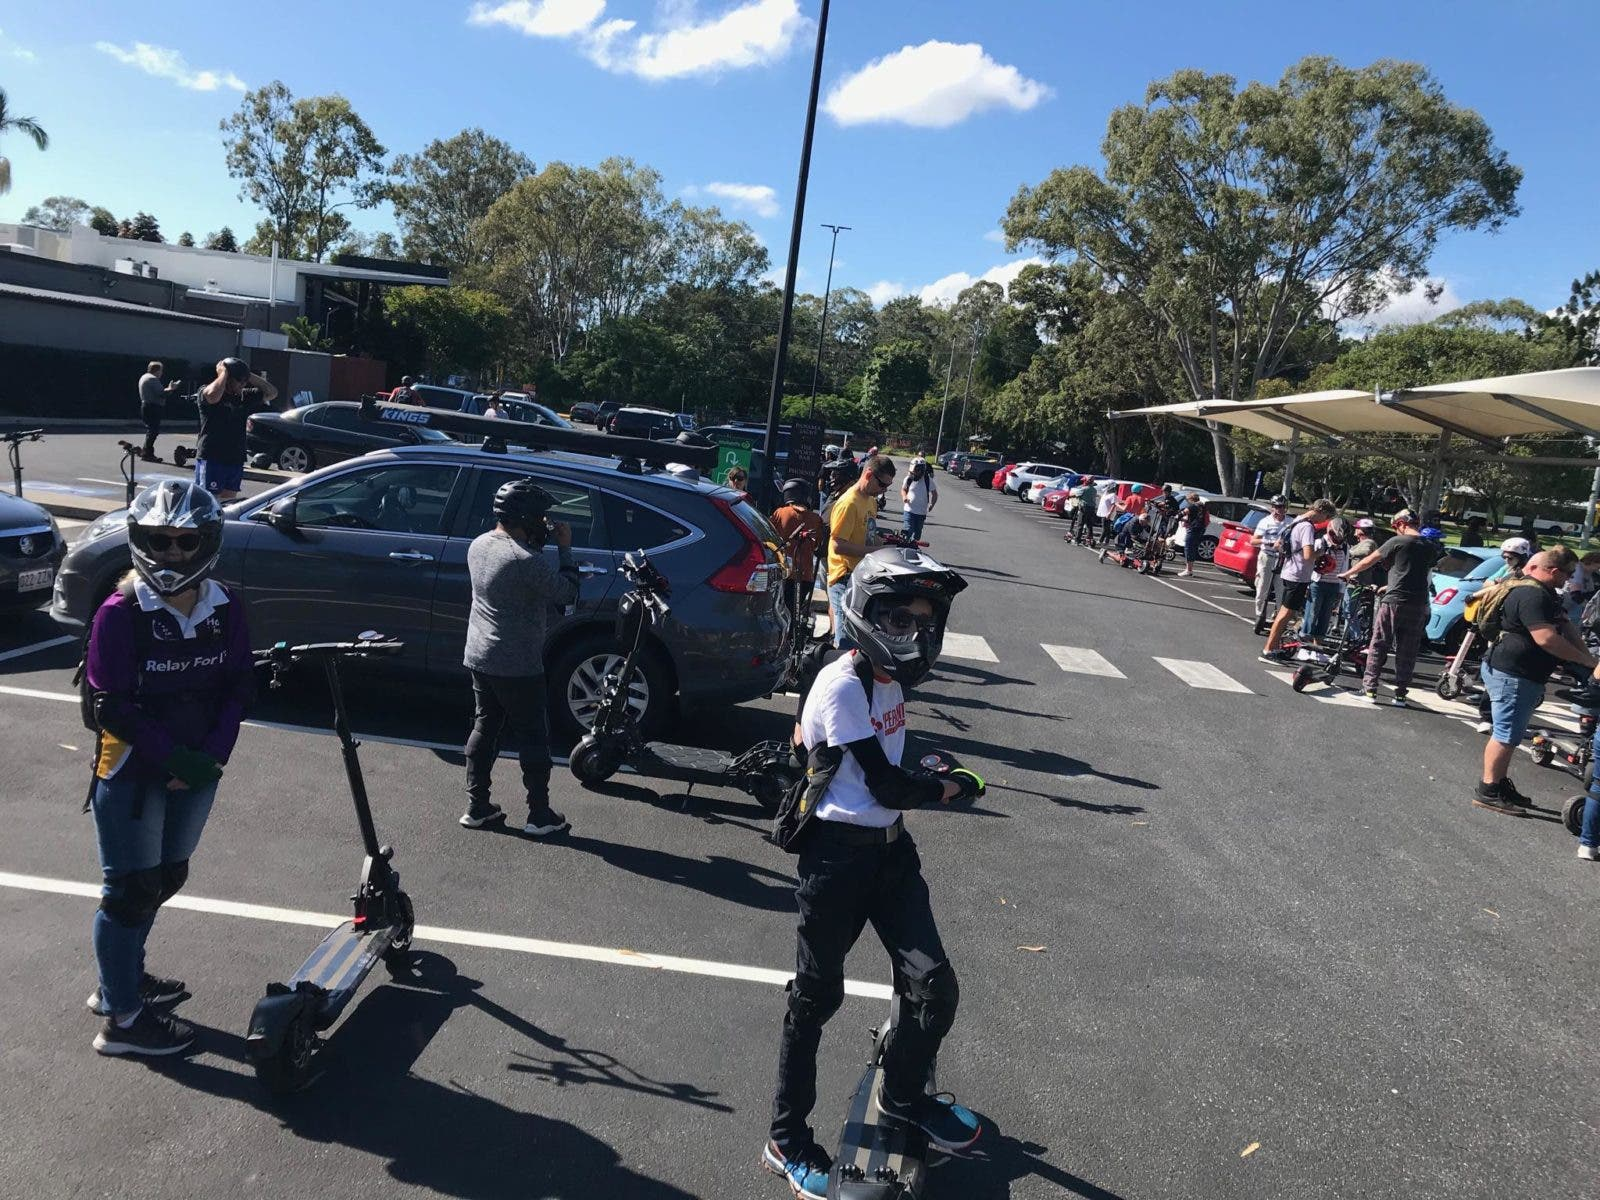 Scooters meetup in Australia